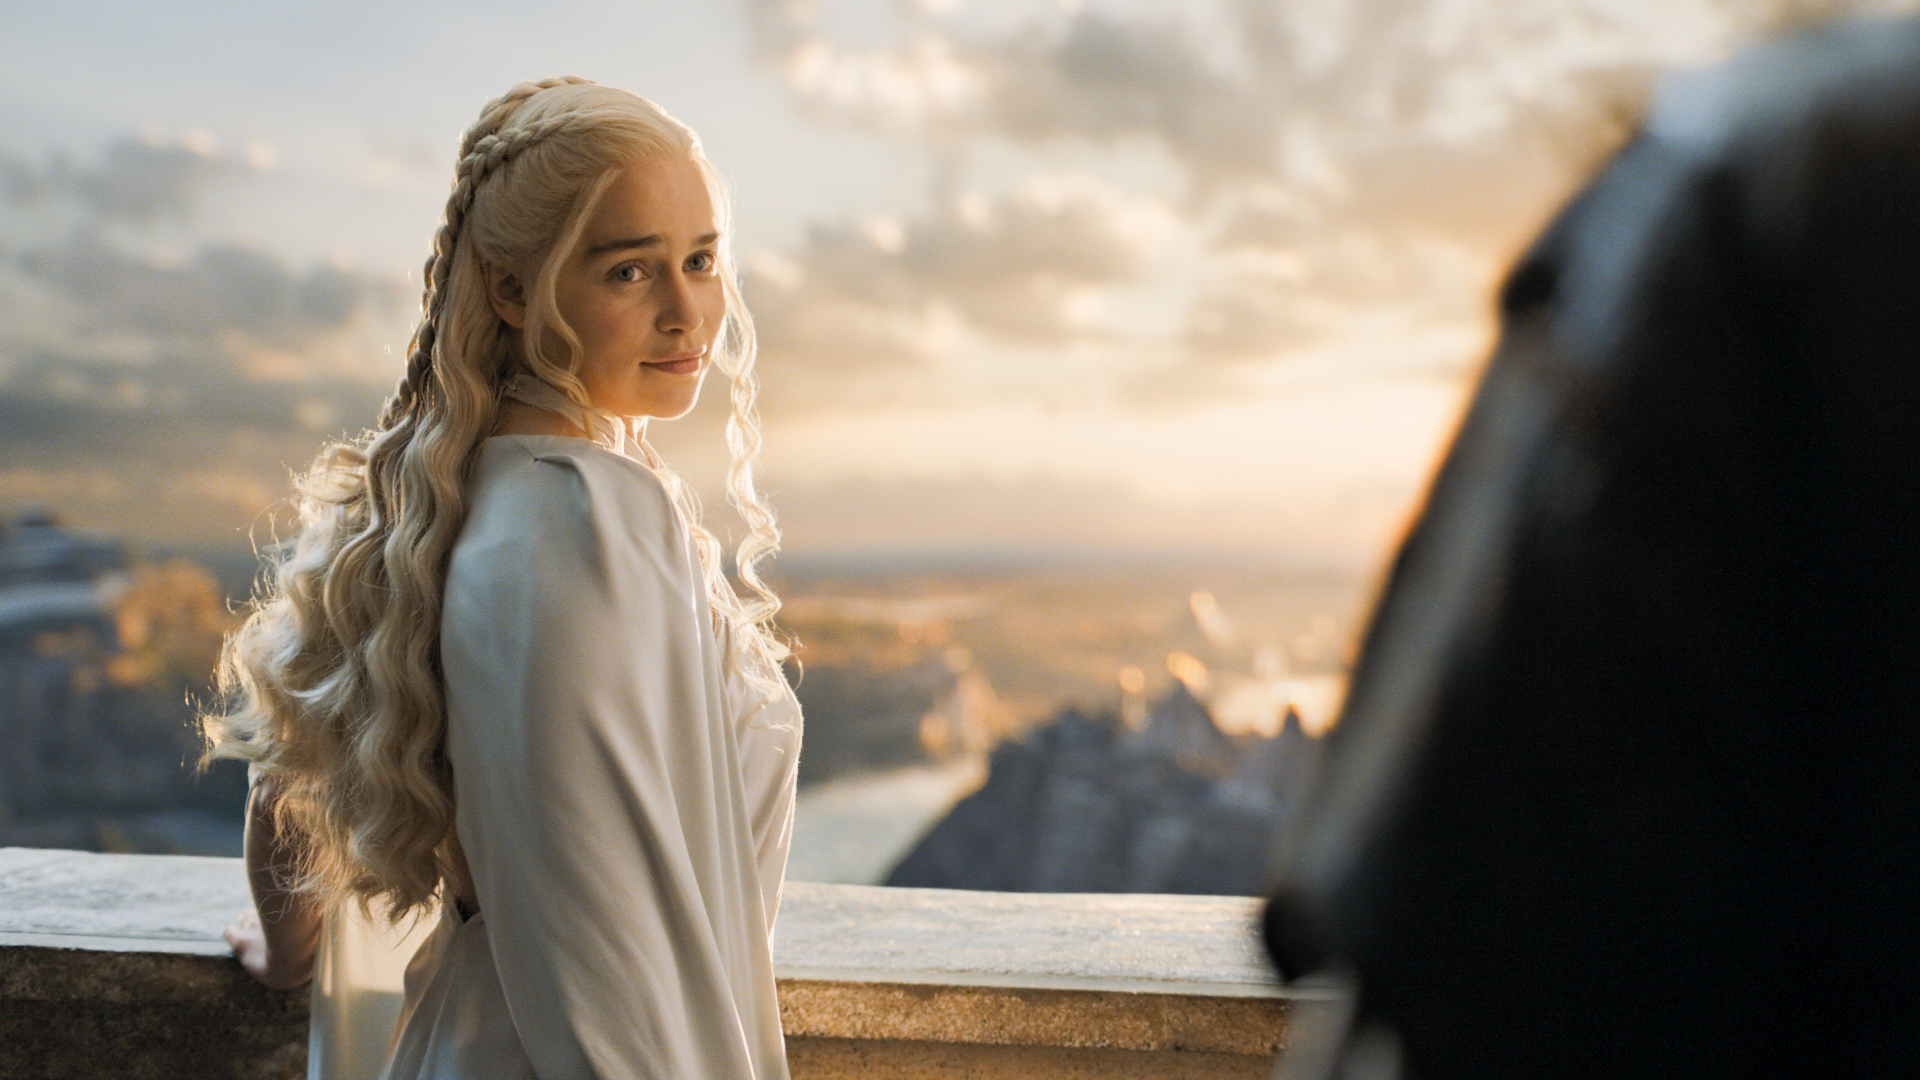 'Game of Thrones' star Emilia Clarke finds personal strength in playing Daenerys